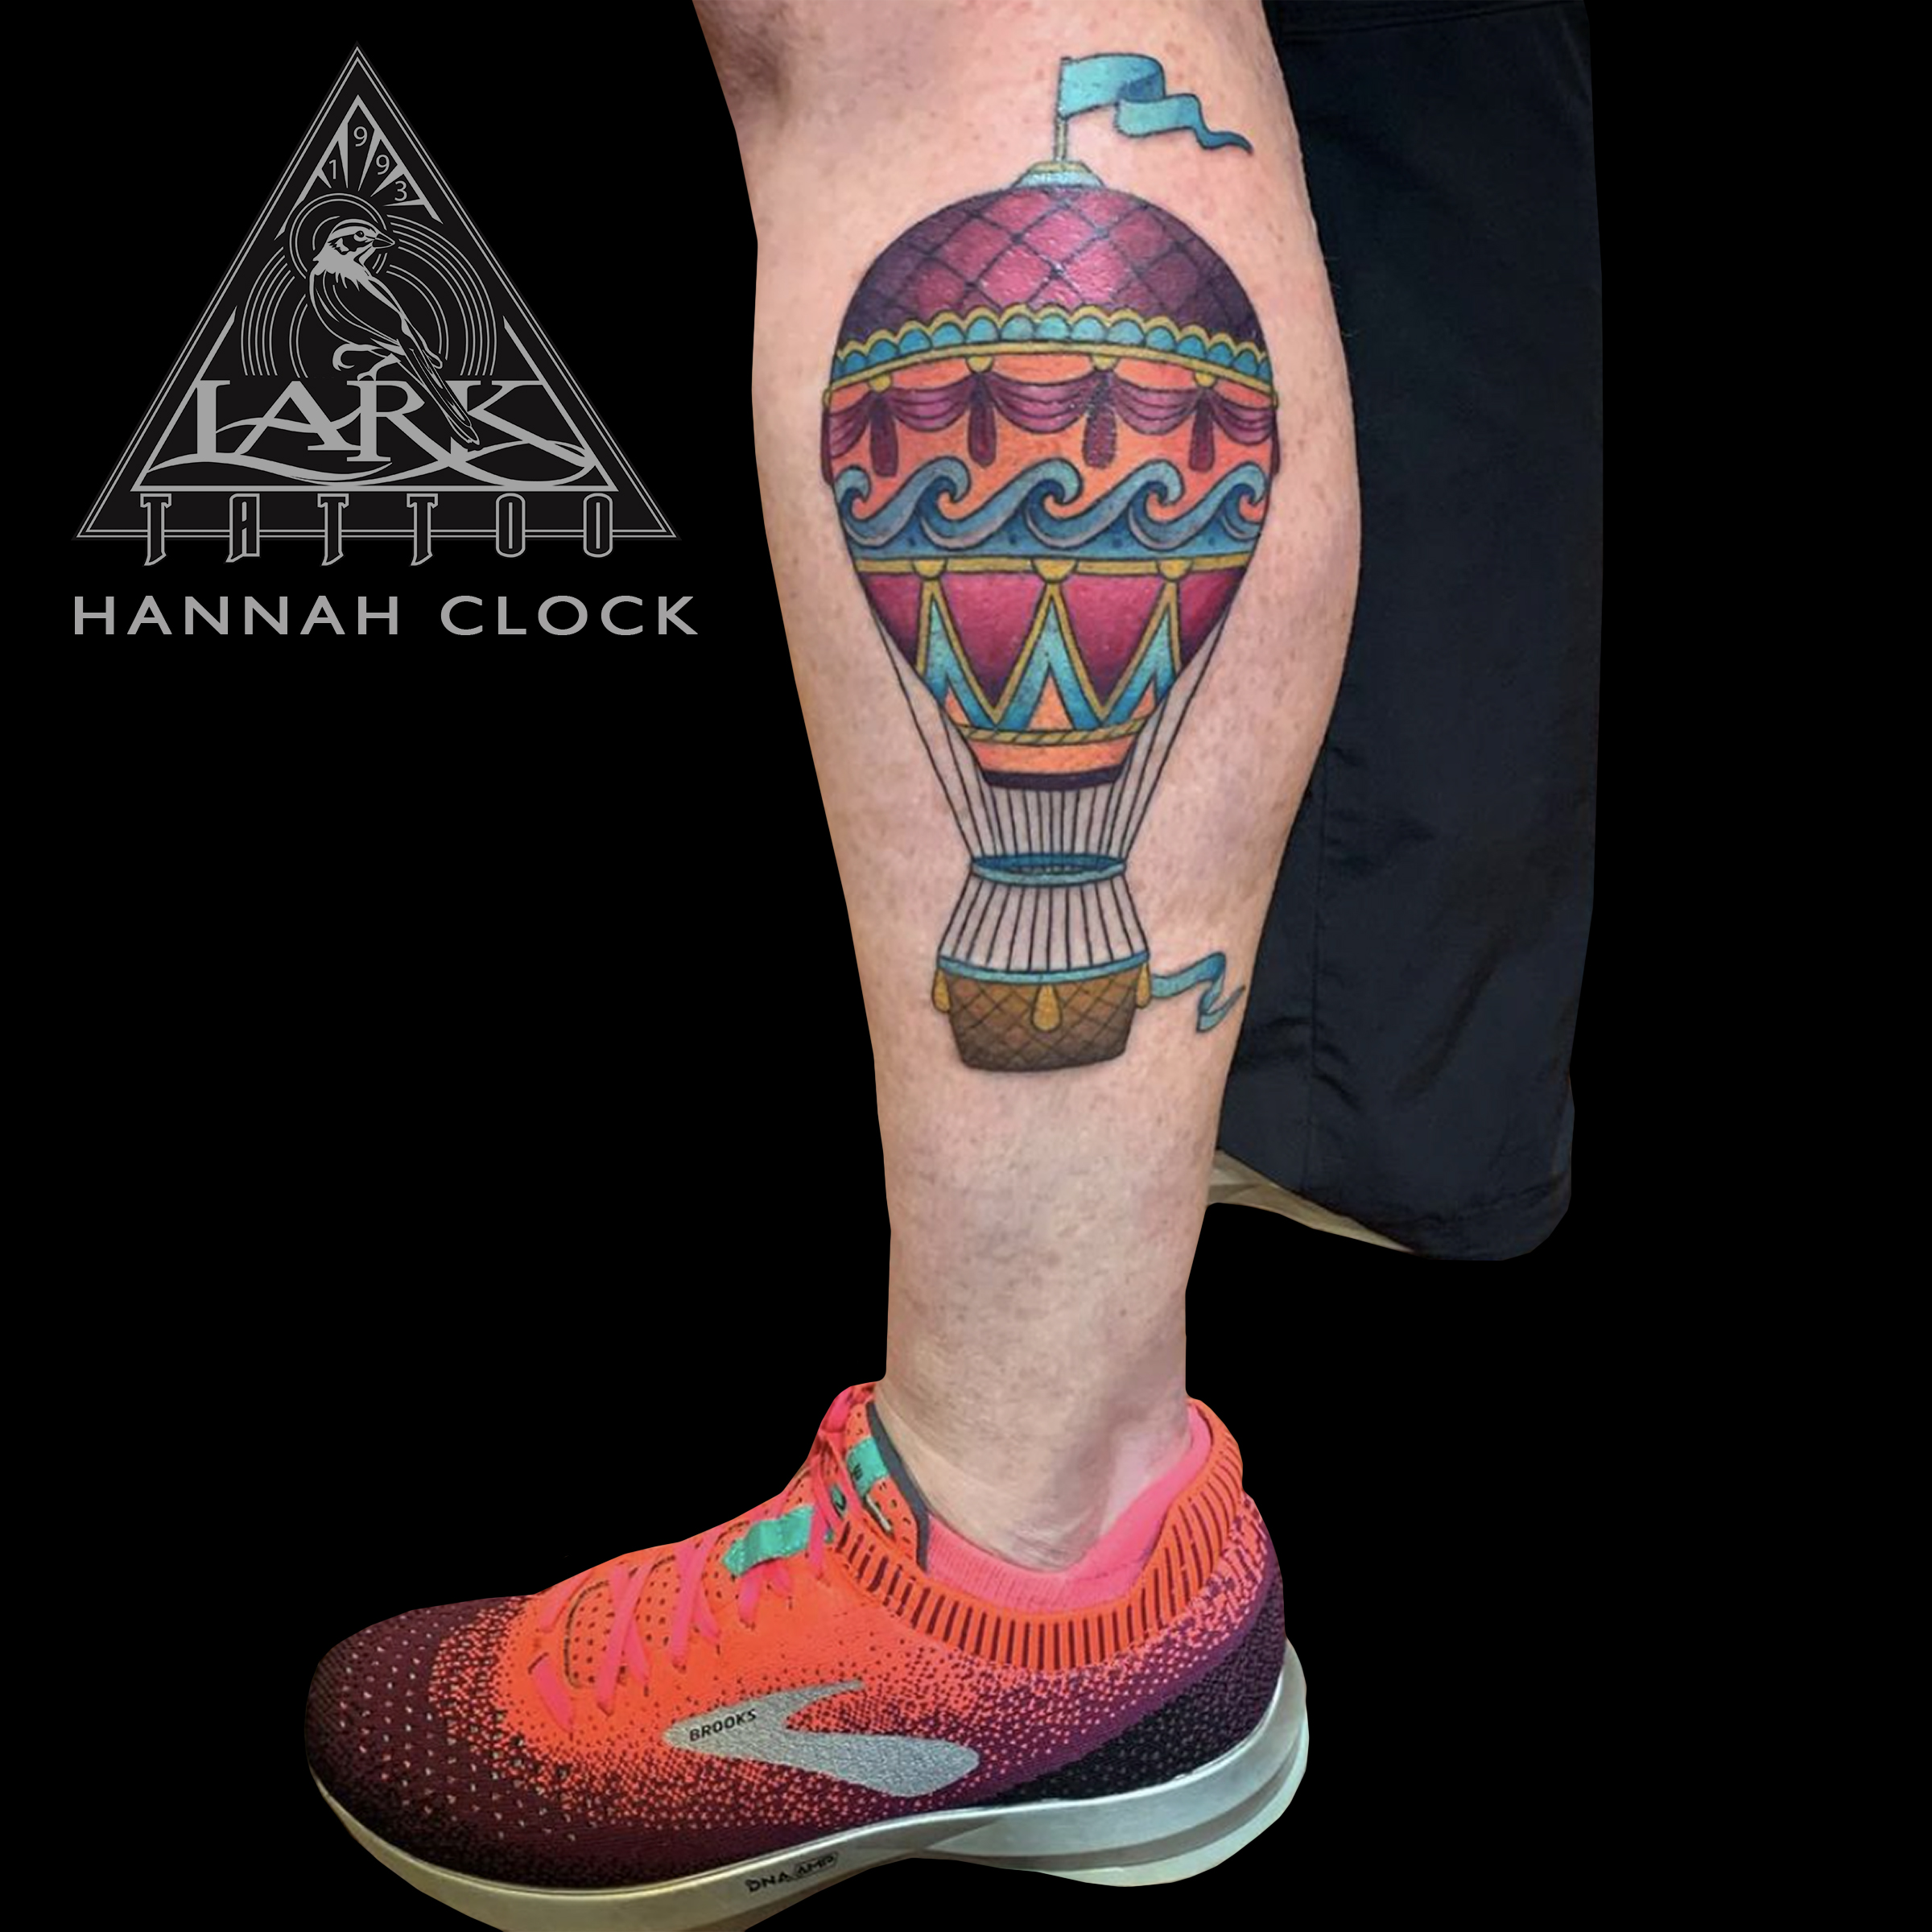 #LarkTattoo #HannahClock #HannahClockLarkTattoo #FemaleTattooer #FemaleArtist #LadyTattooer #Tattoo #Tattoos #ColorTattoo #HotAirBalloon #HotAirBalloonTattoo #Balloon #BalloonTattoo #CuteTattoo #LegTattoo #TattooArtist #Tattoist #Tattooer #LongIslandTattooArtist #LongIslandTattooer #LongIslandTattoo #TattooOfTheDay #Tat #Tats #Tatts #Tatted #Inked #Ink #TattooInk #AmazingInk #AmazingTattoo #BodyArt #LarkTattooWestbury #Westbury #LongIsland #NY #NewYork #USA #Art #Tattedup #InkedUp #LarkTattoos